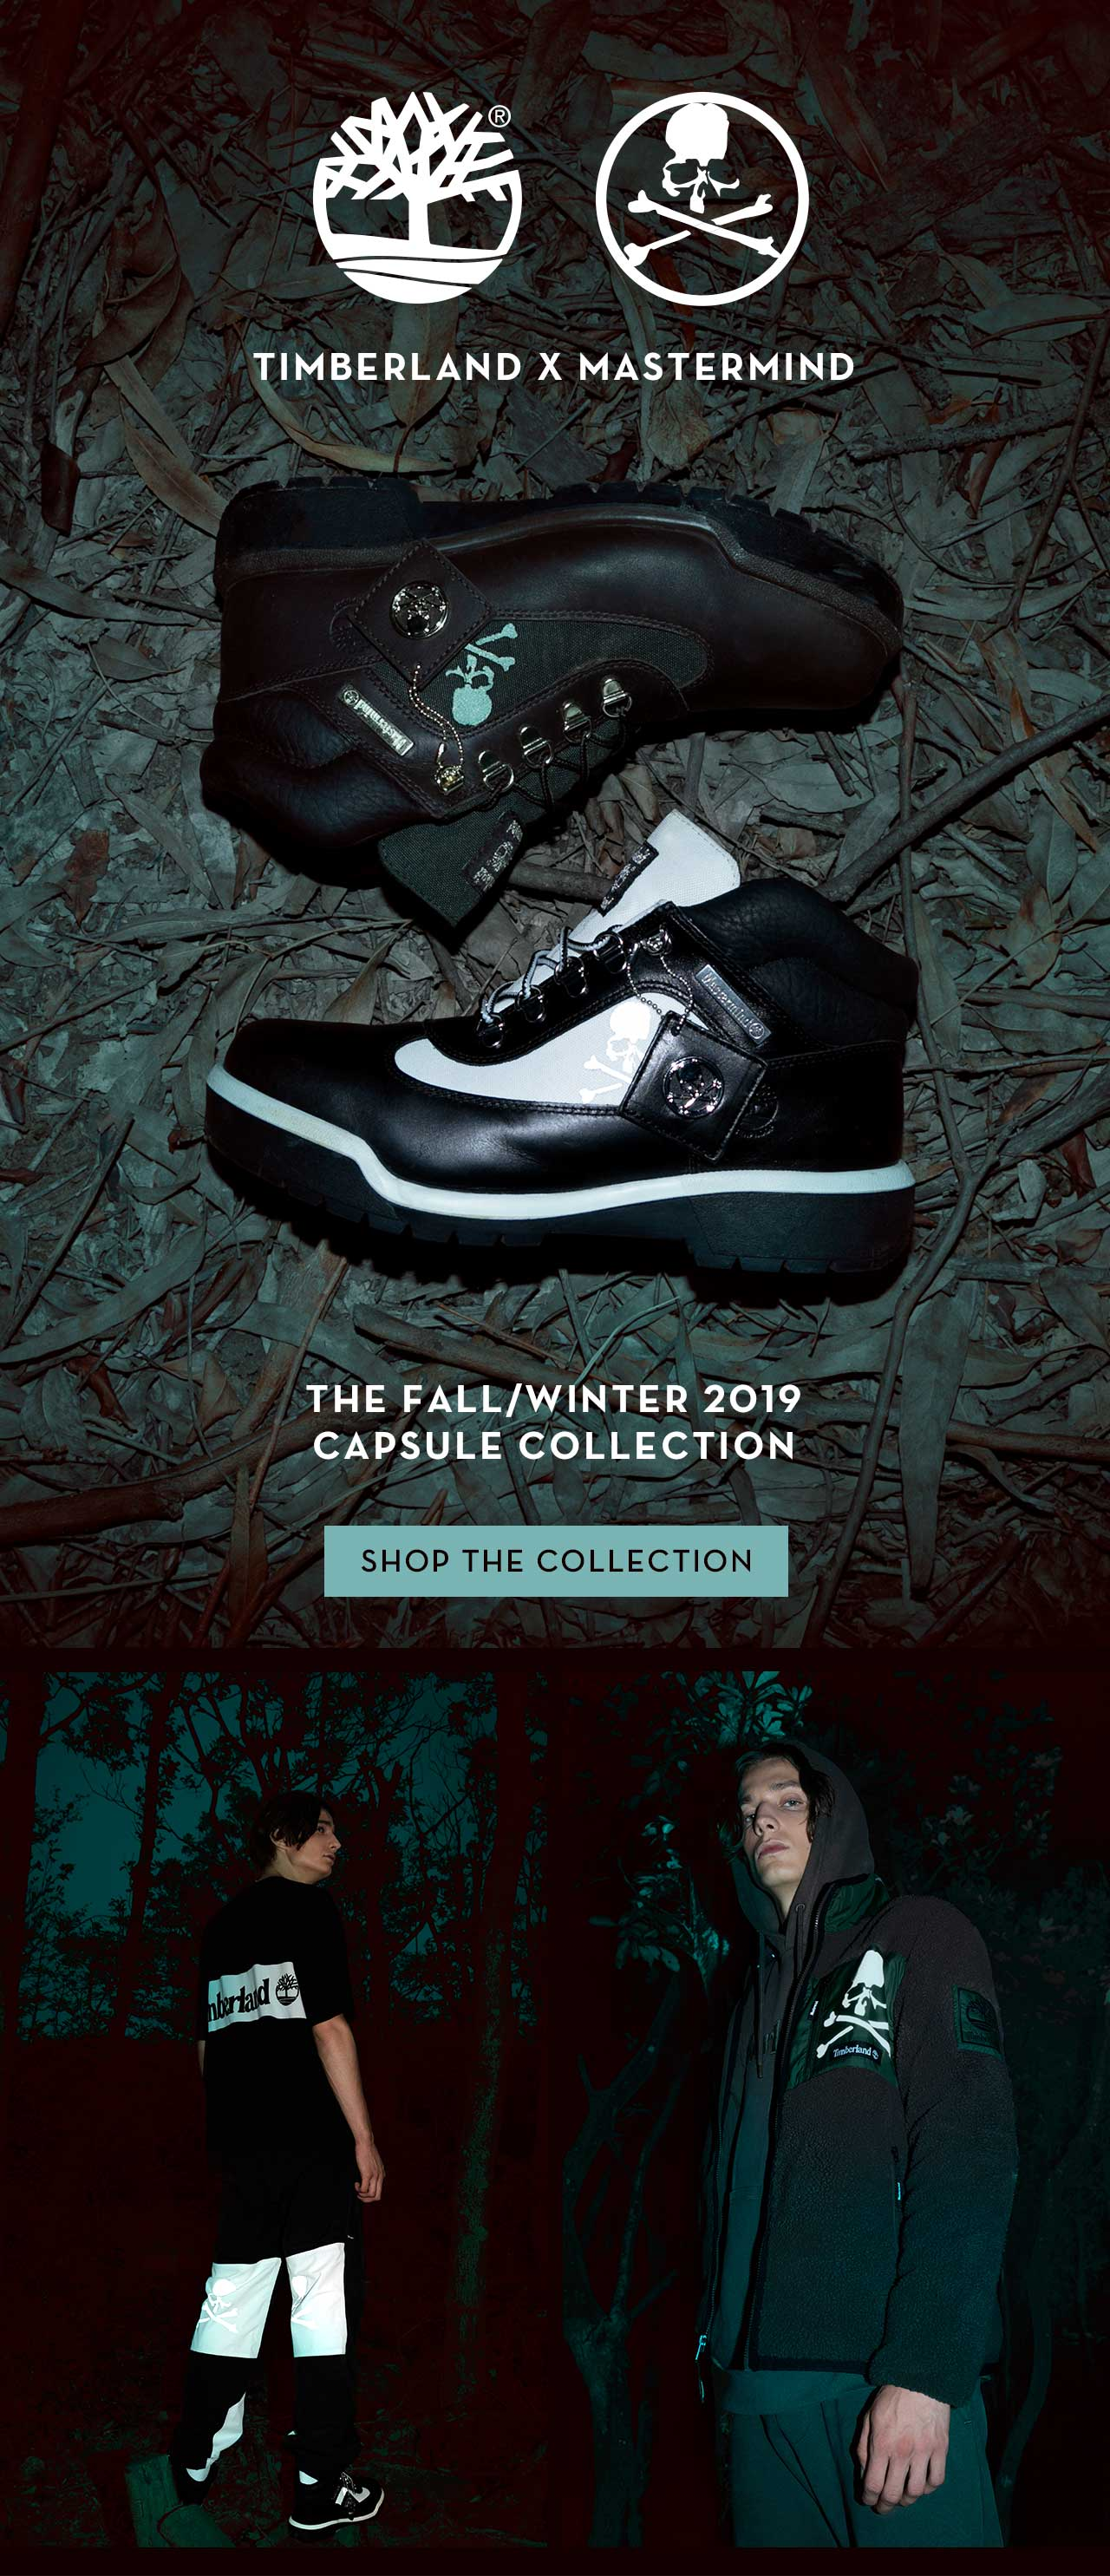 TIMBERLAND X MASTERMIND  THE FALL/WINTER 2019 CAPSULE COLLECTION SHOP THE COLLECTION